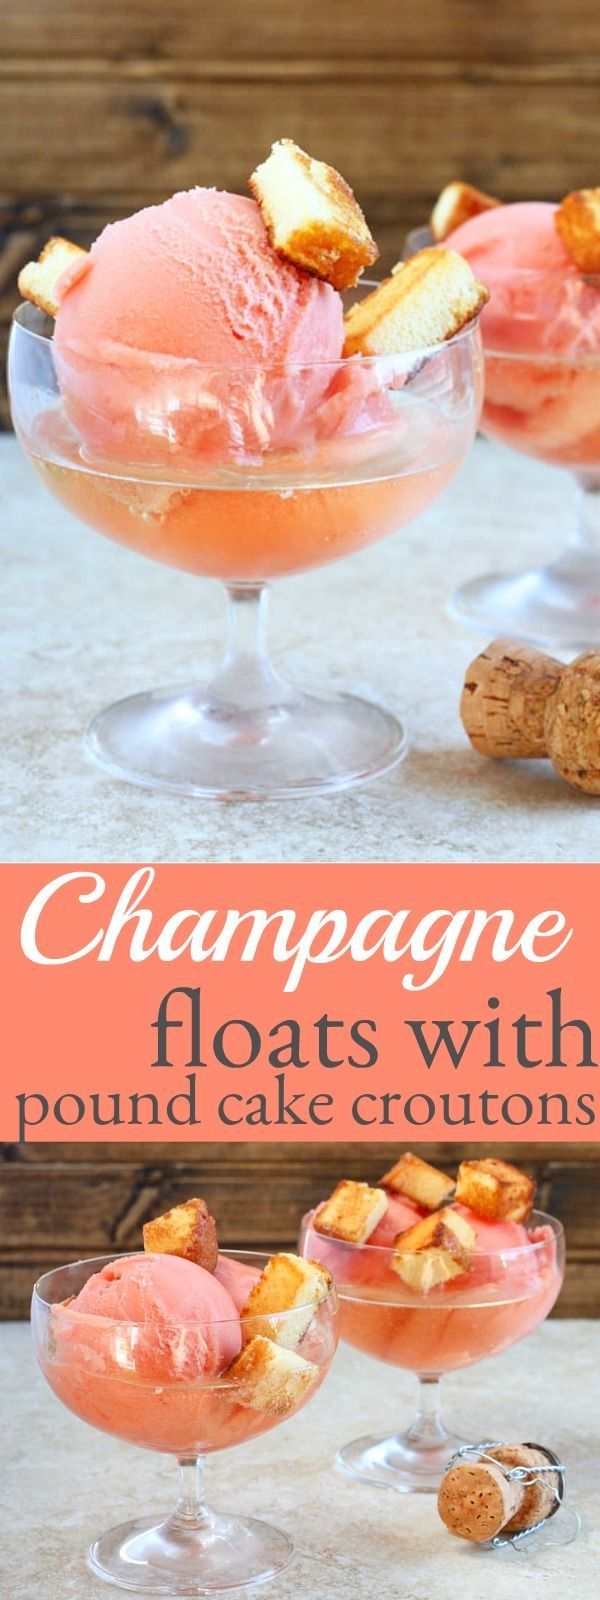 Champagne floats with pound cake croutons for your New Years Eve celebration. Festive holiday desserts with champagne. Sparkling wine floats. Champagne desserts.